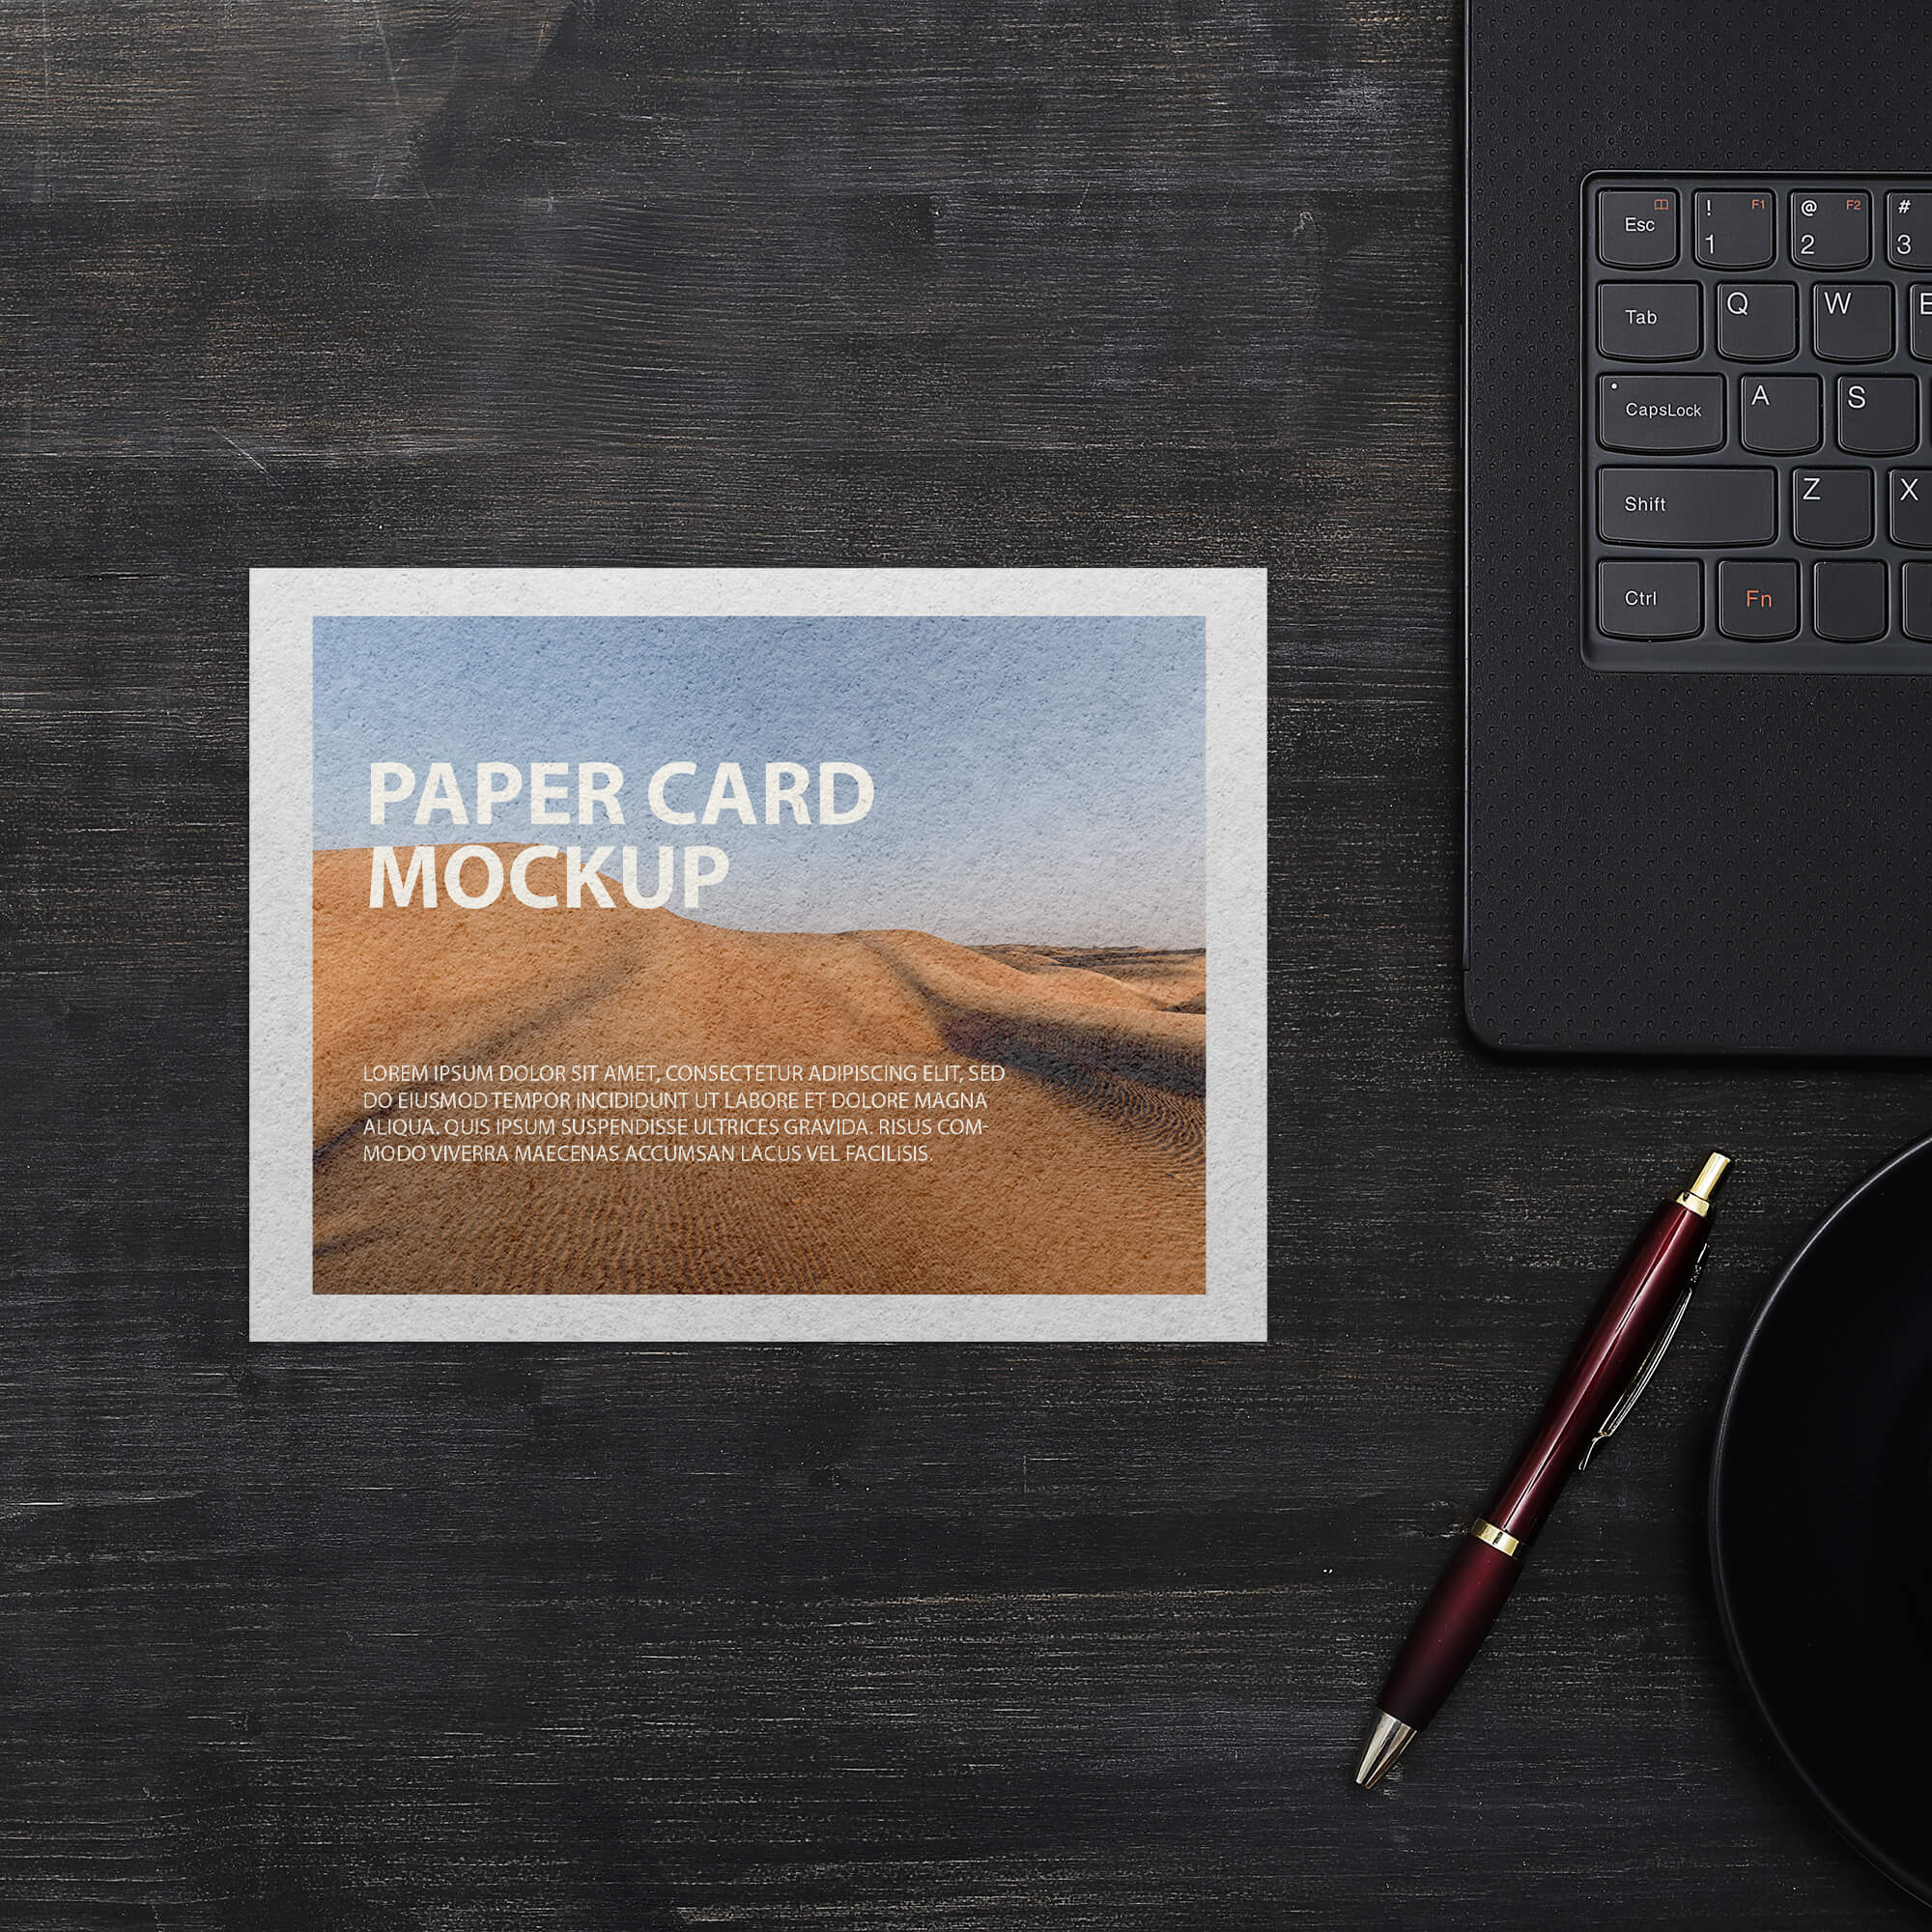 Free Paper Card Mockup PSD Template